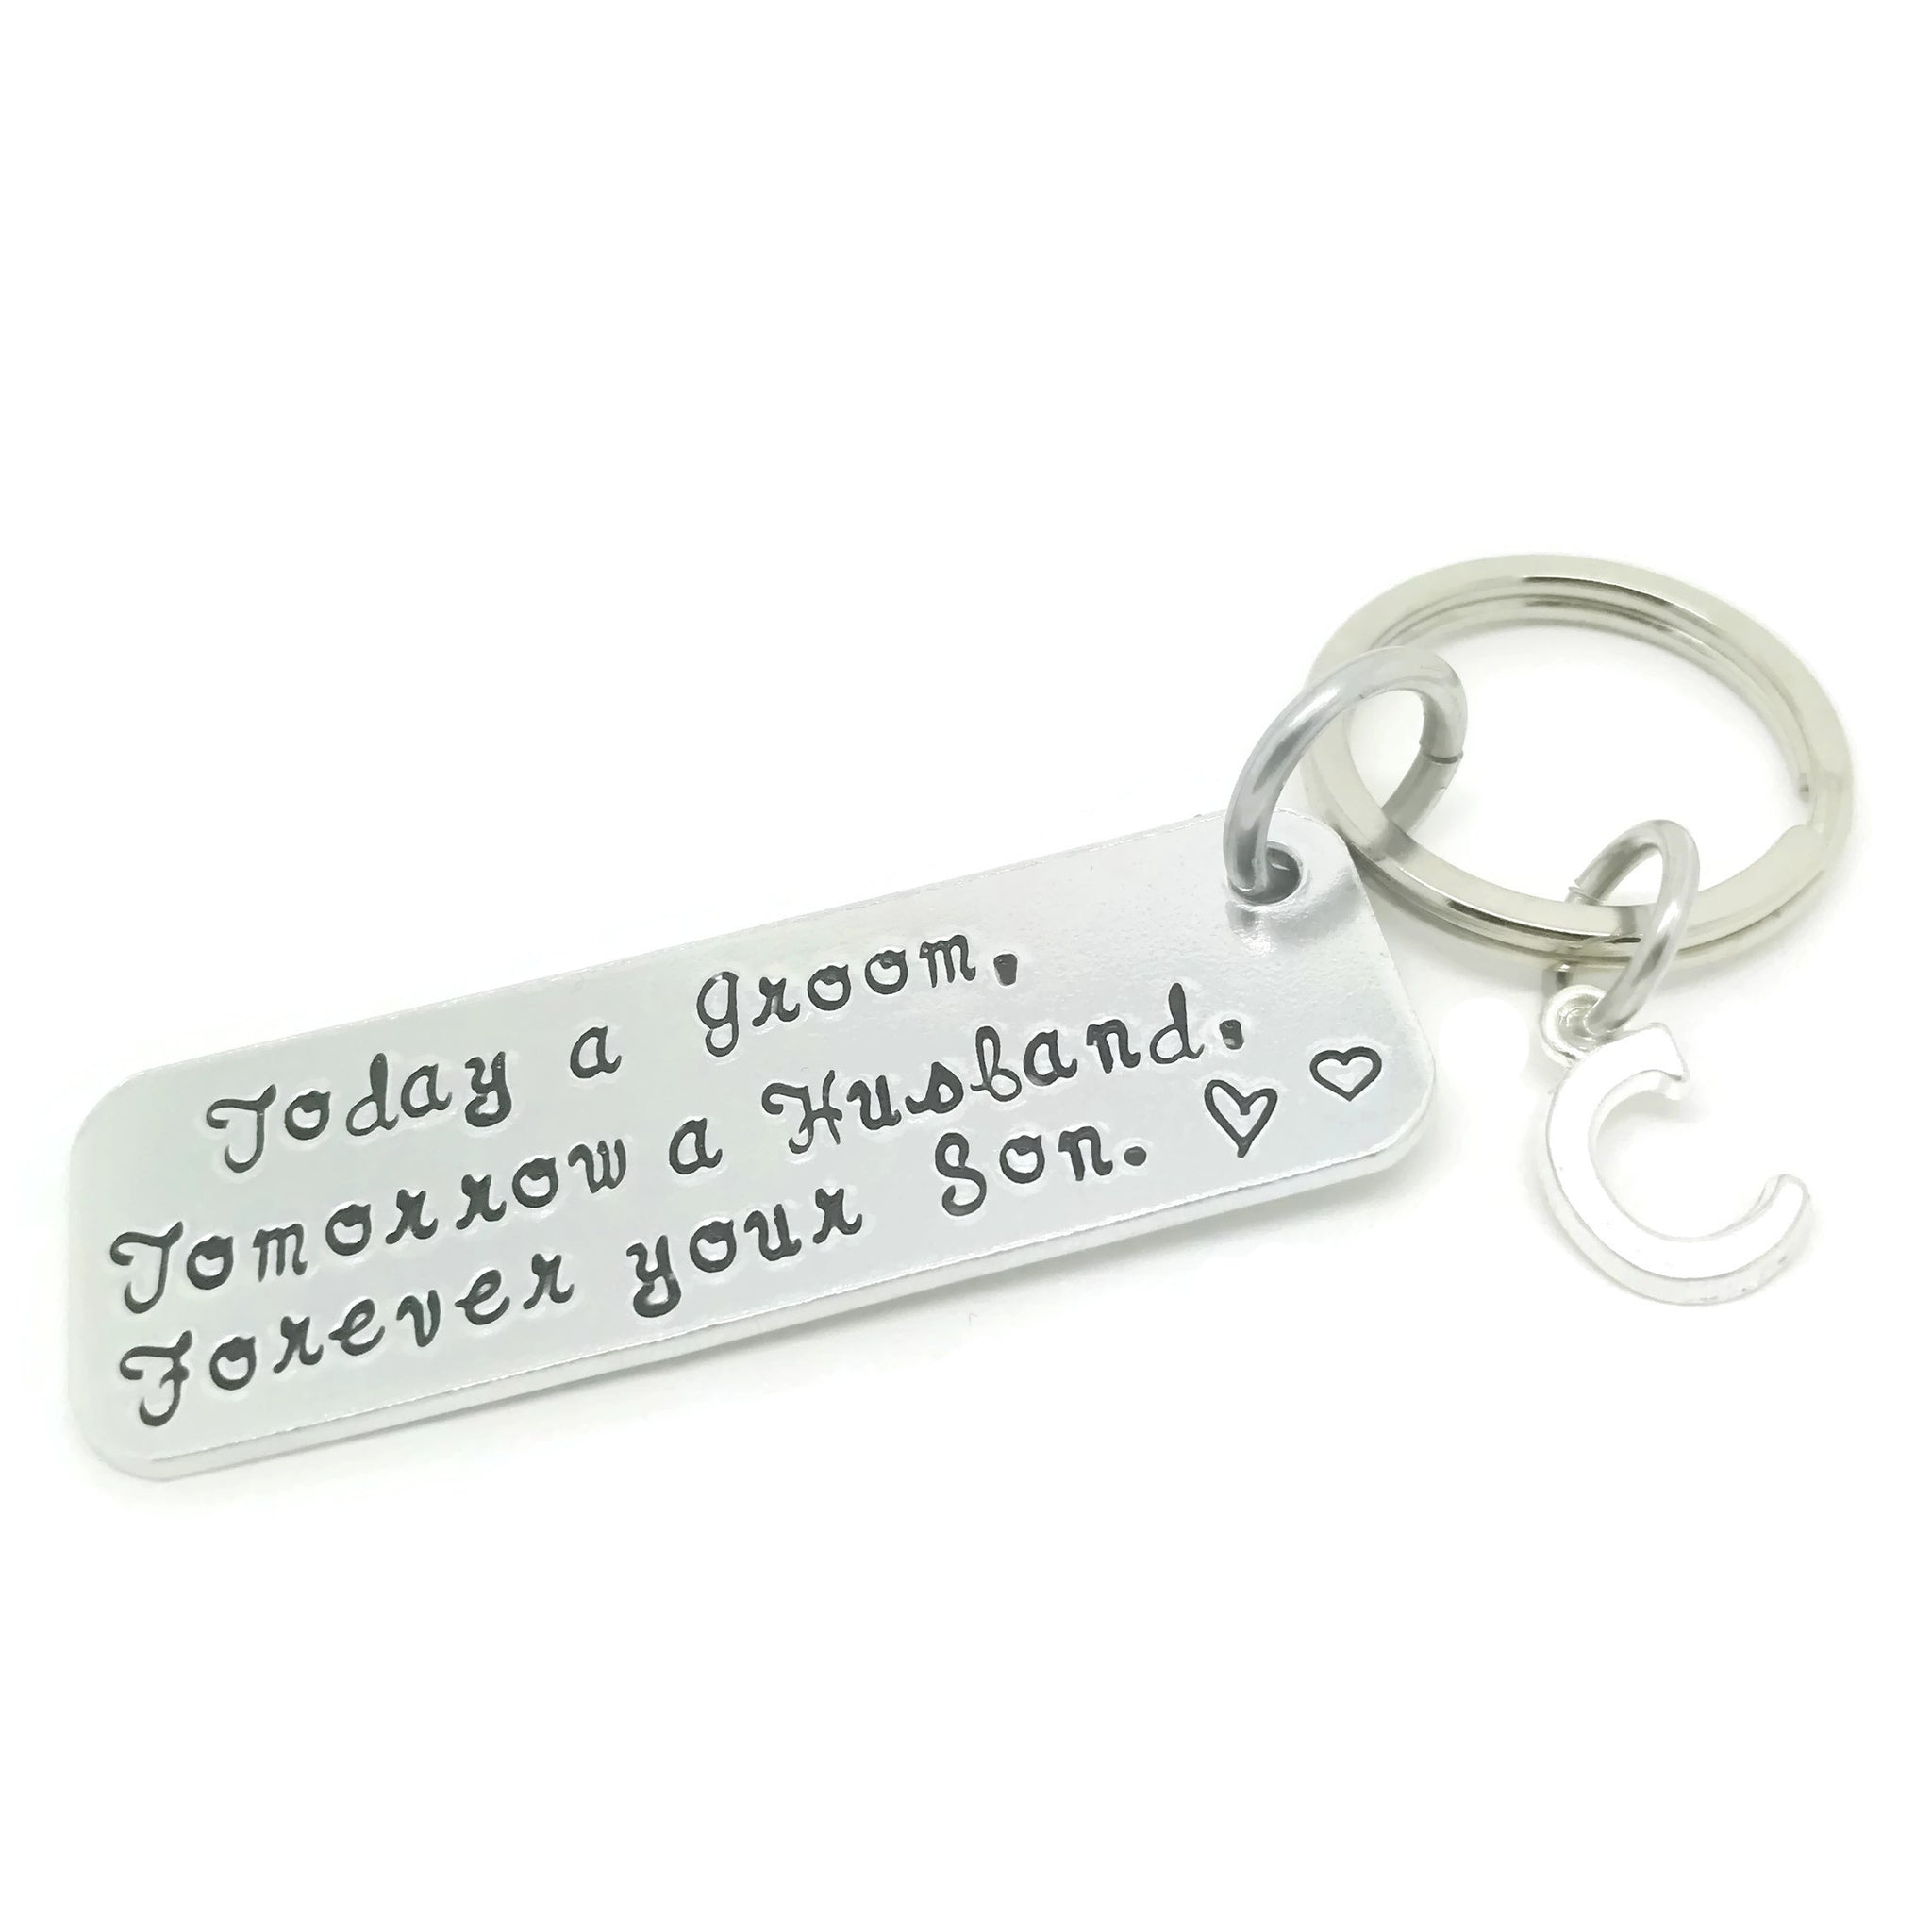 Today a Groom, tomorrow a Husband forever your Son personalised keyring